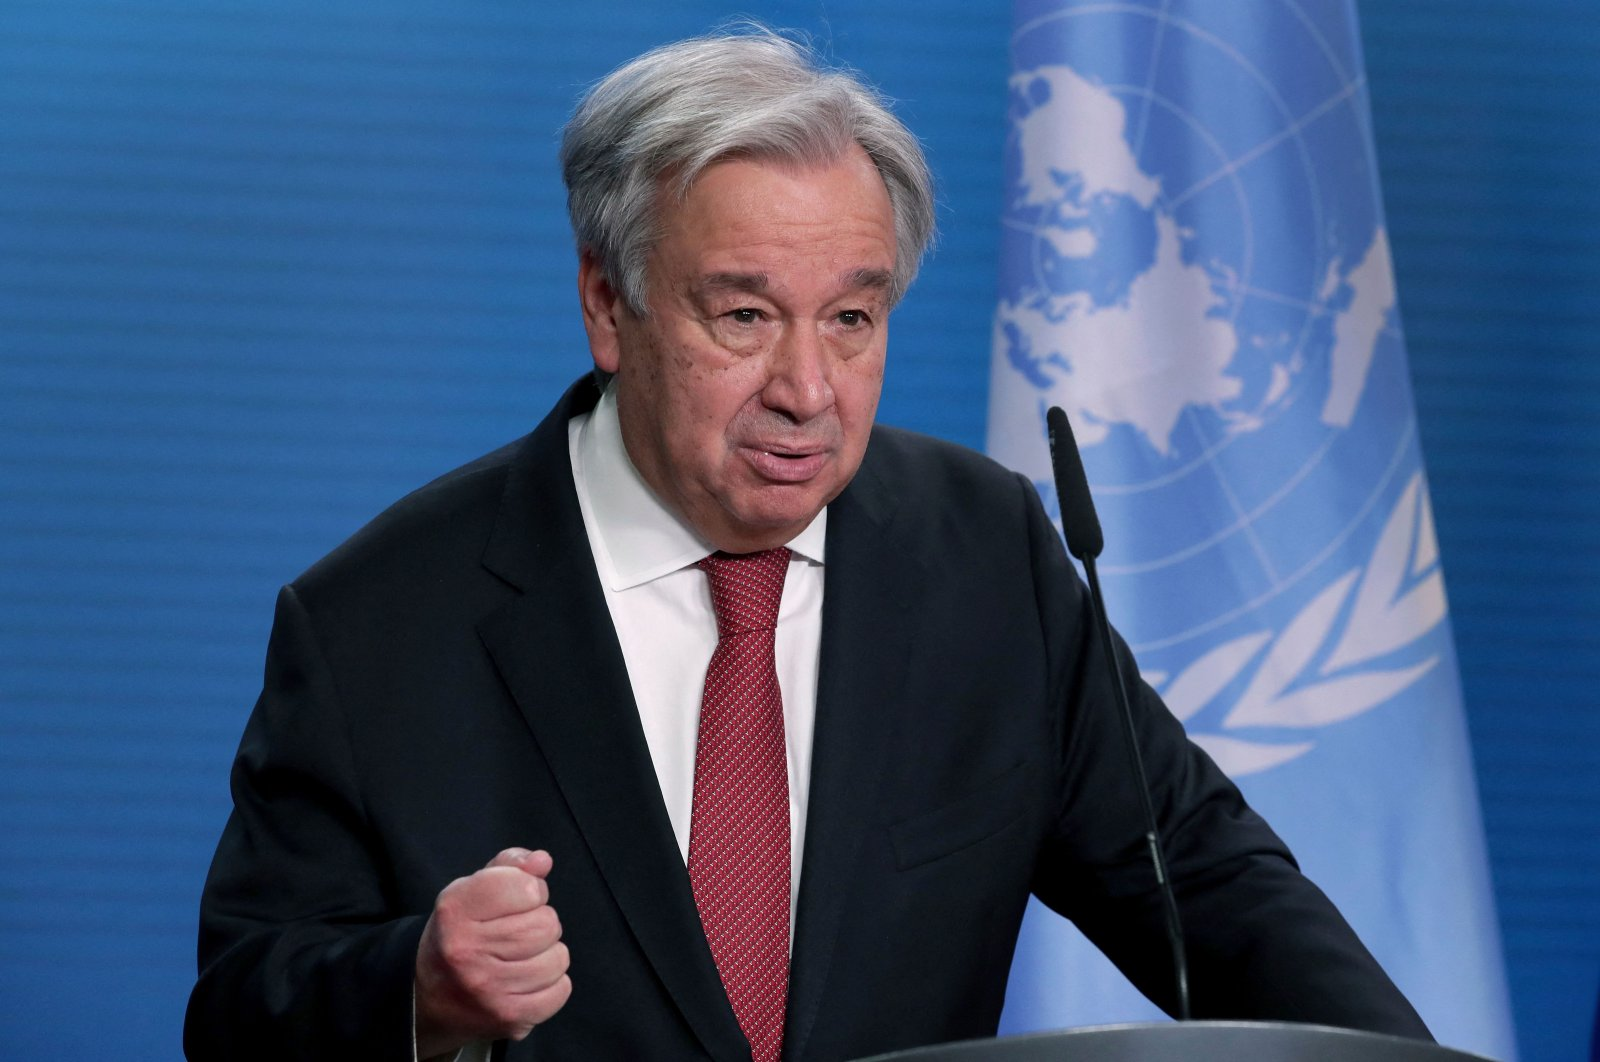 U.N. Secretary-General Antonio Guterres attends a joint press conference after a meeting in Berlin, Germany, Dec. 17, 2020. (AFP Photo)